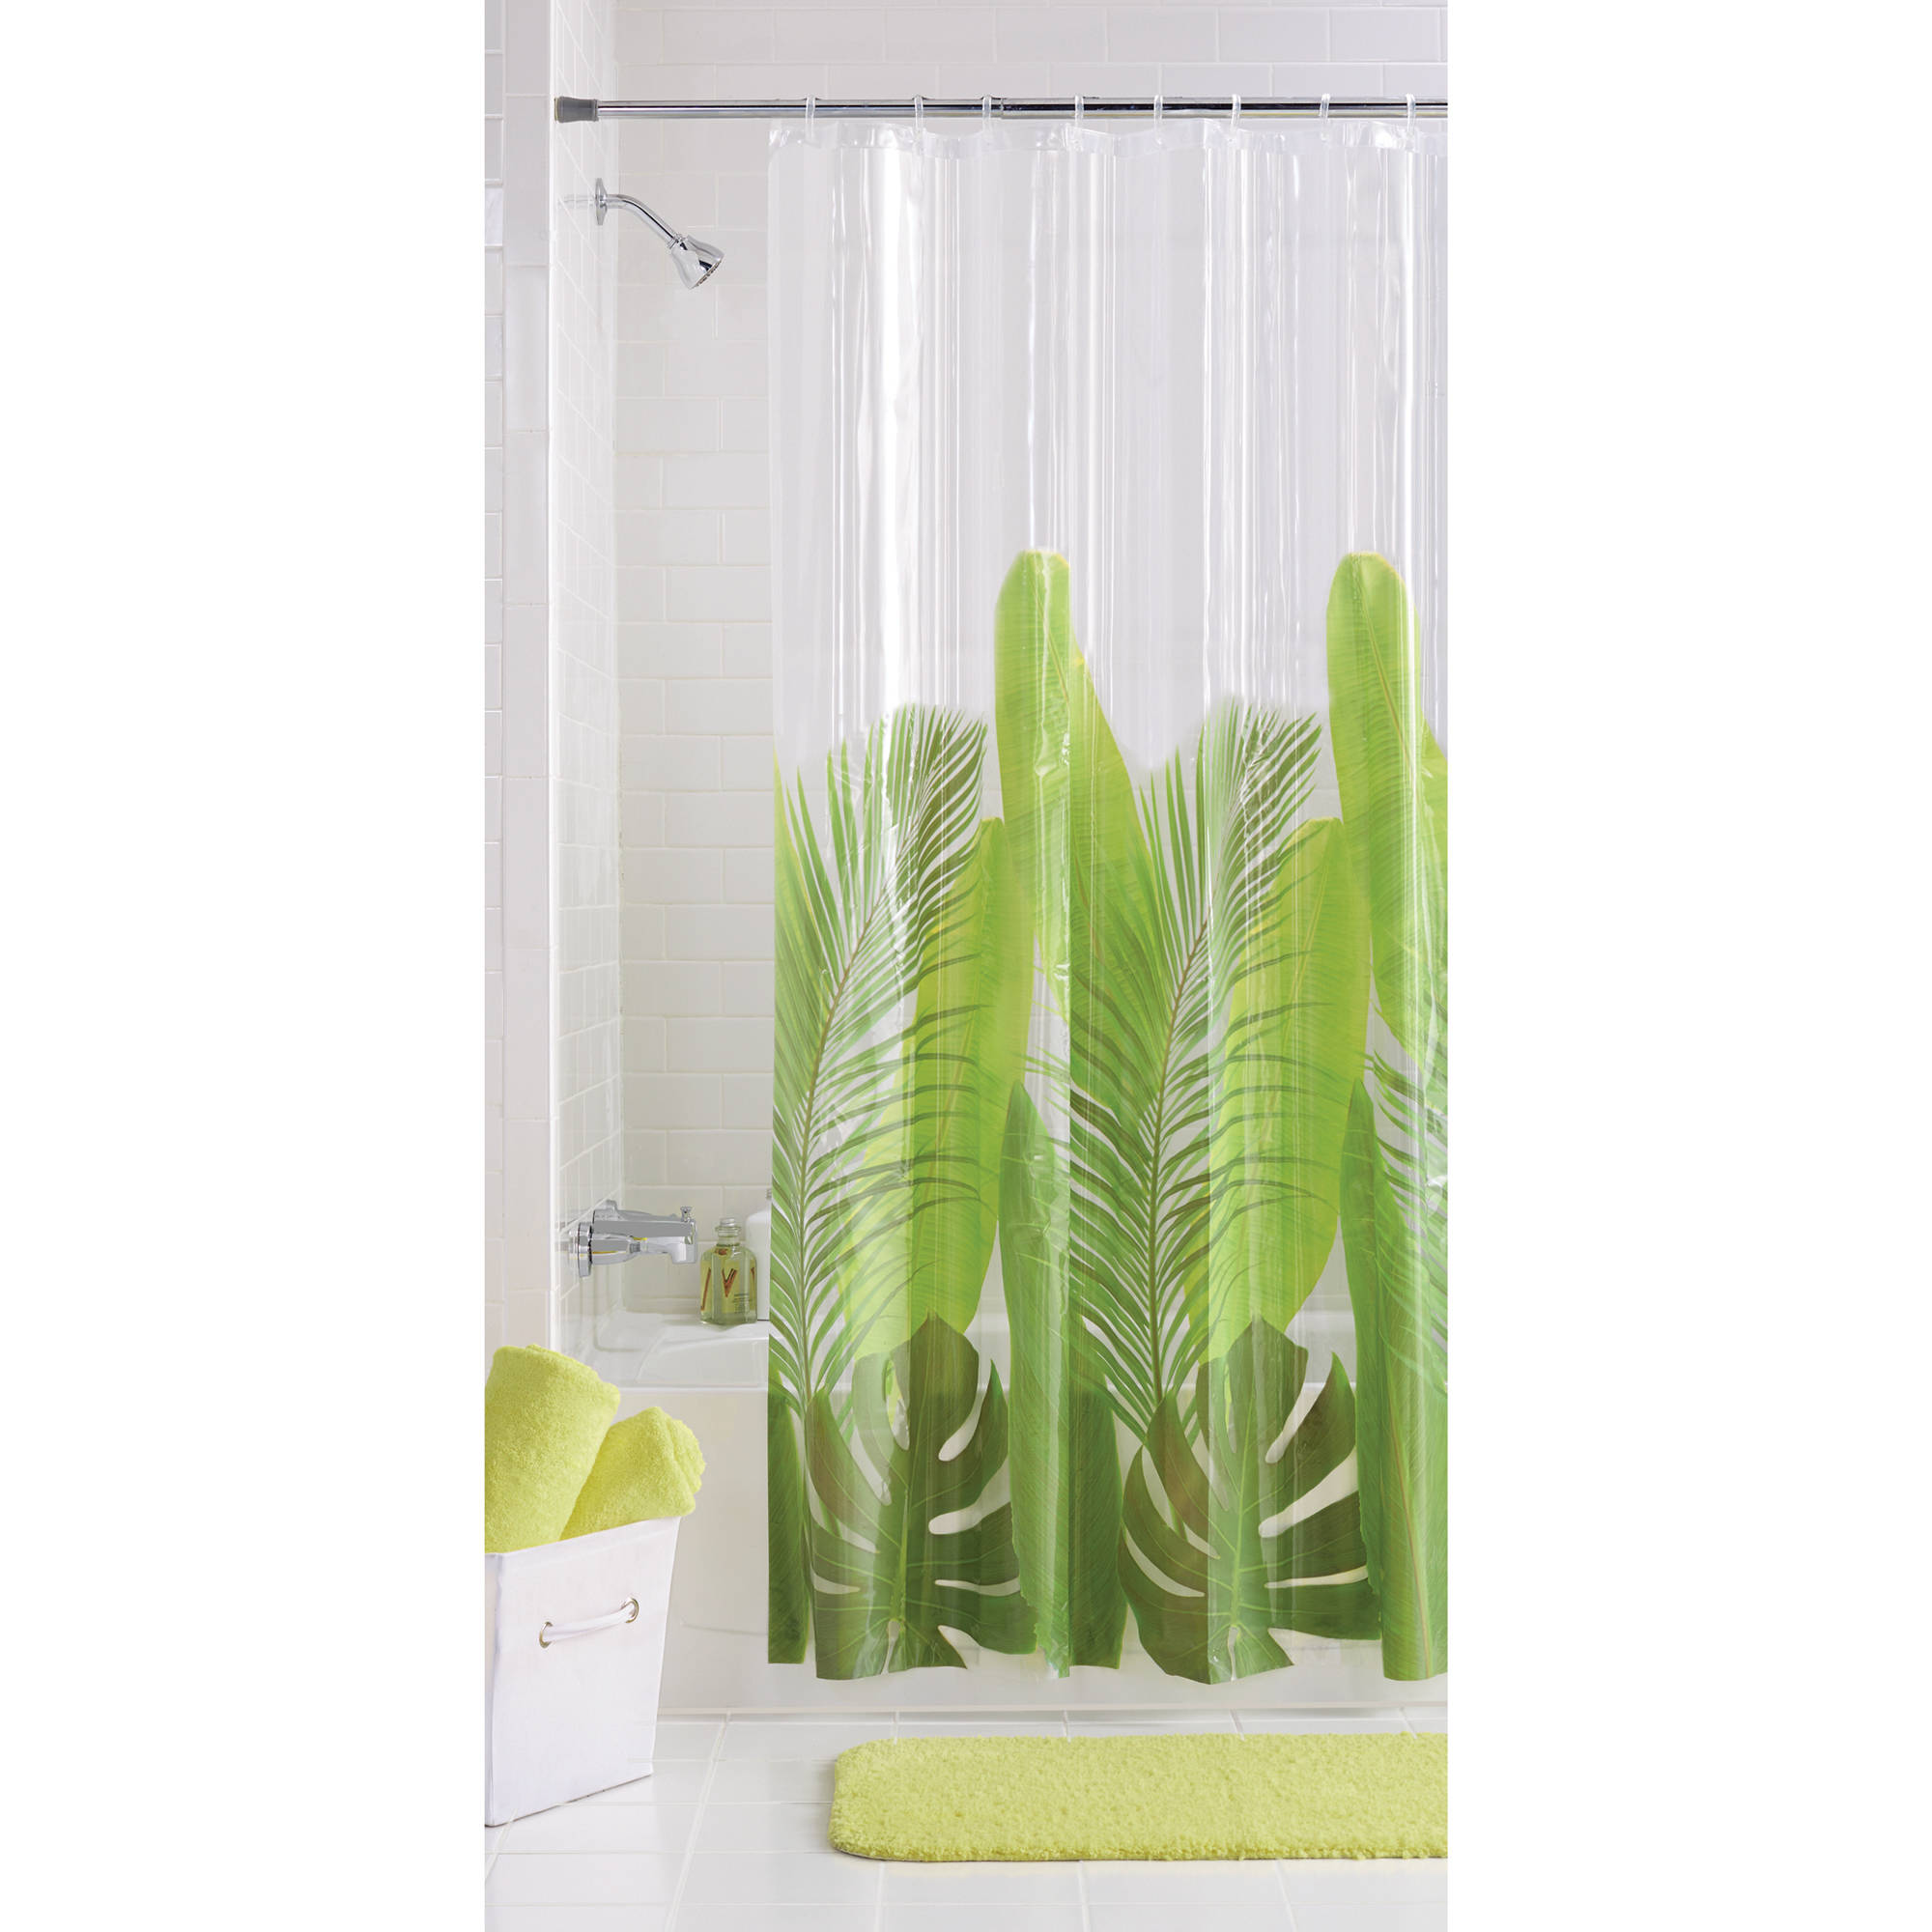 Mainstays Tropical Leaf Vinyl Shower Curtain - Walmart.com